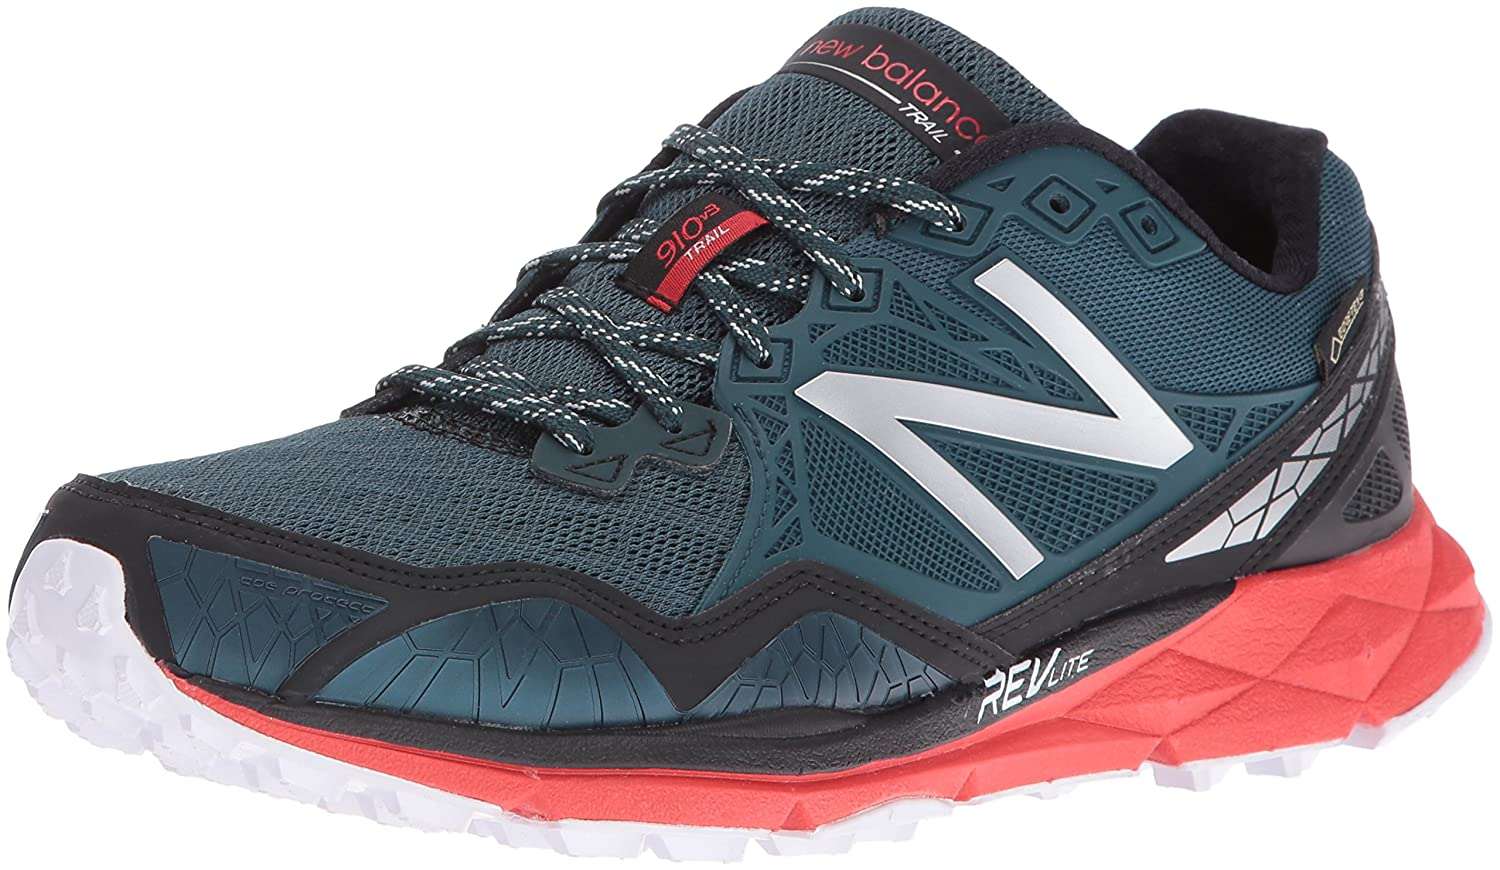 outlet store 646fe 4a9c9 New Balance Men s MT910V3 Trail Shoe-M Running, Green Red, 7.5 D US   Amazon.com.au  Fashion